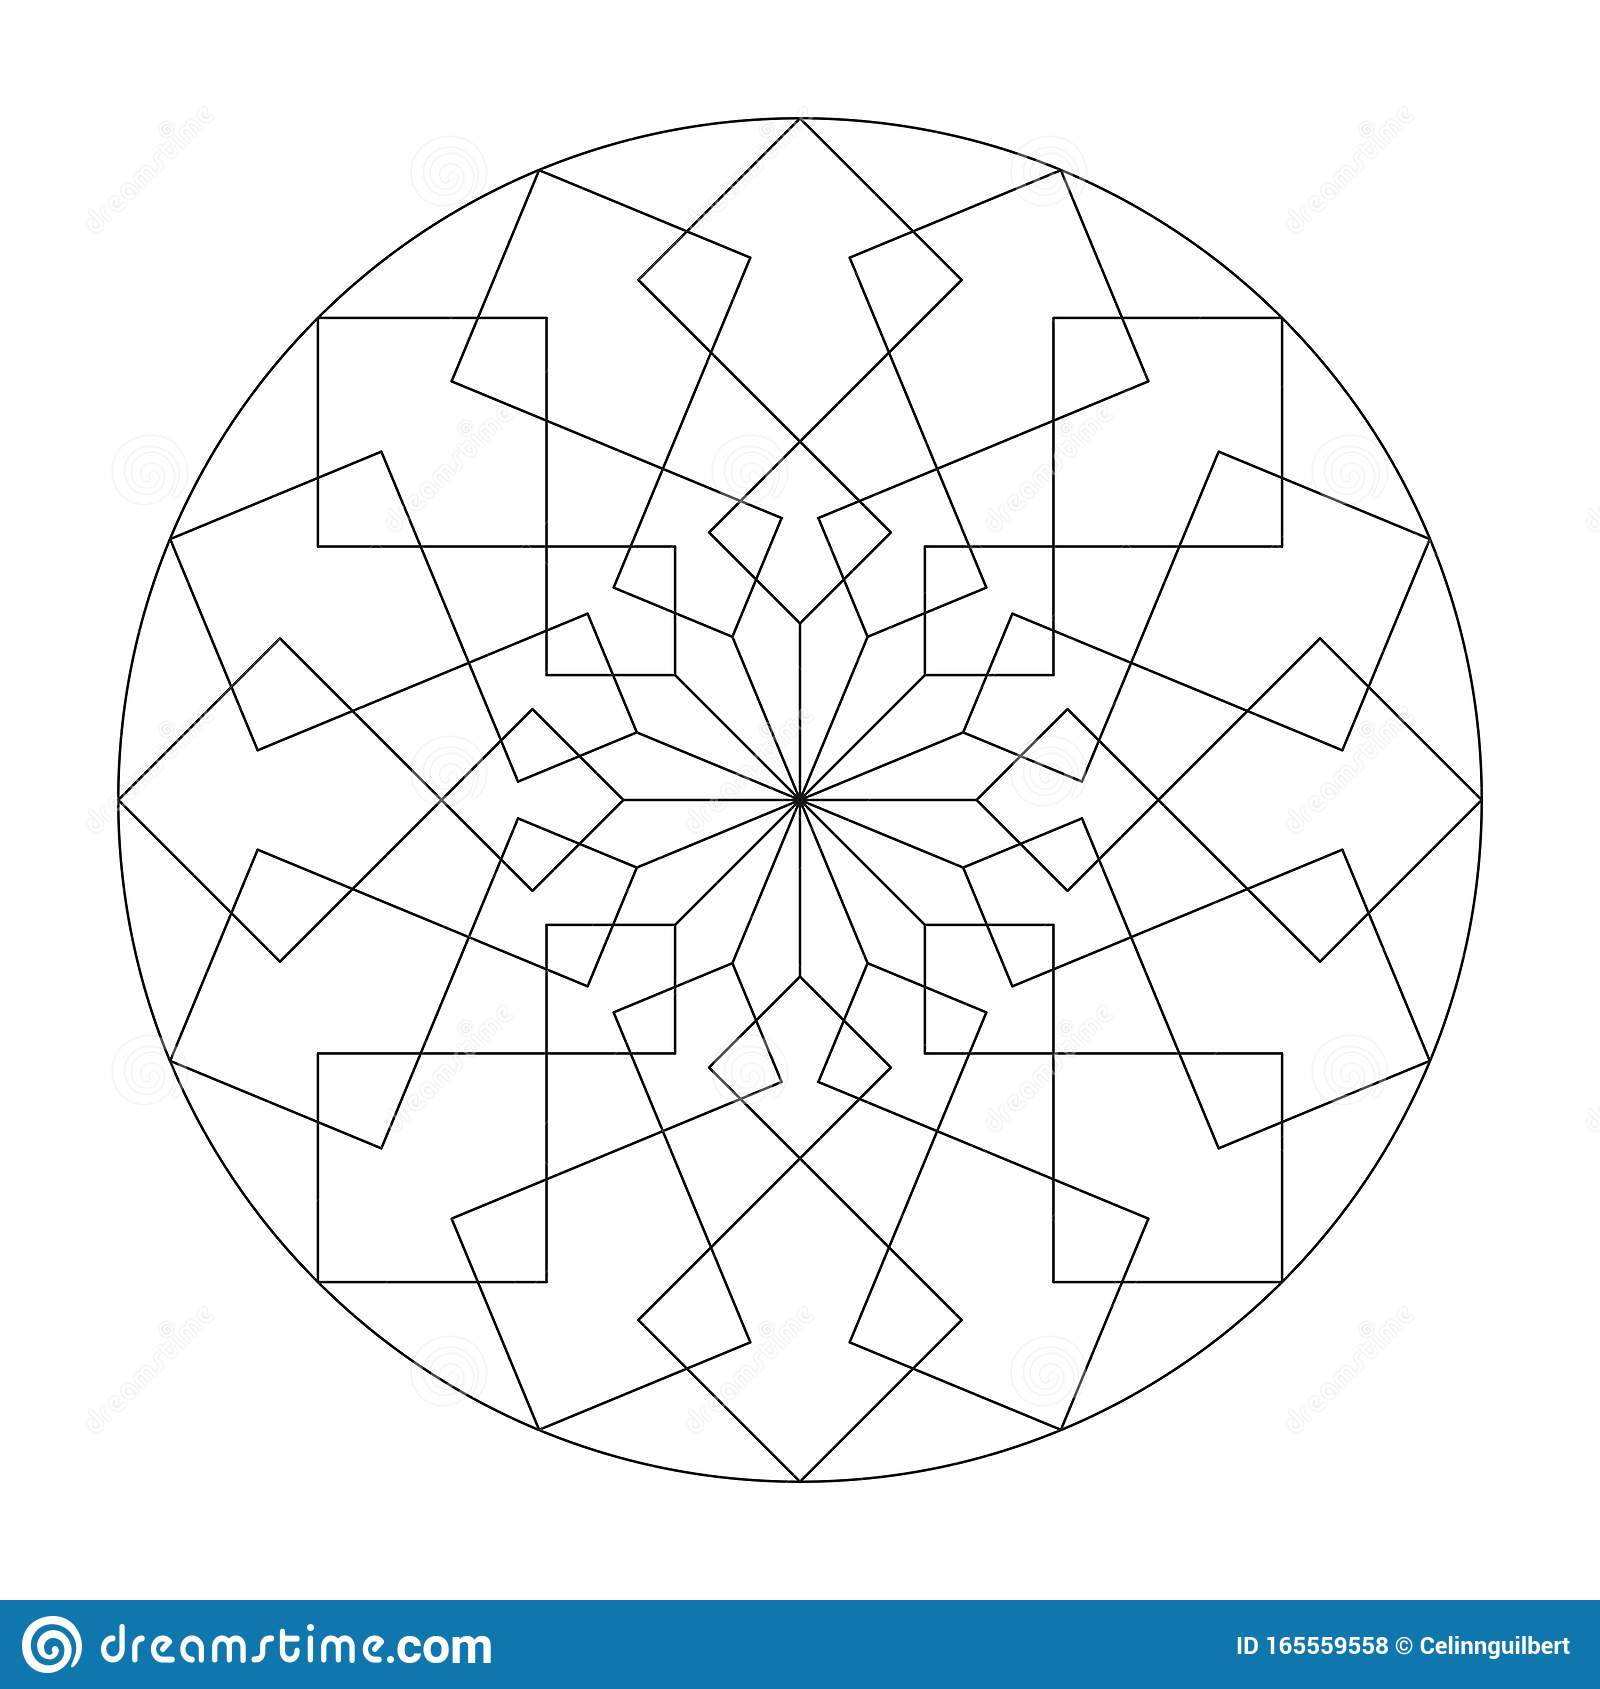 Adult Coloring Book | Art Therapy Volume 3 - Printable Coloring ... | 1689x1600